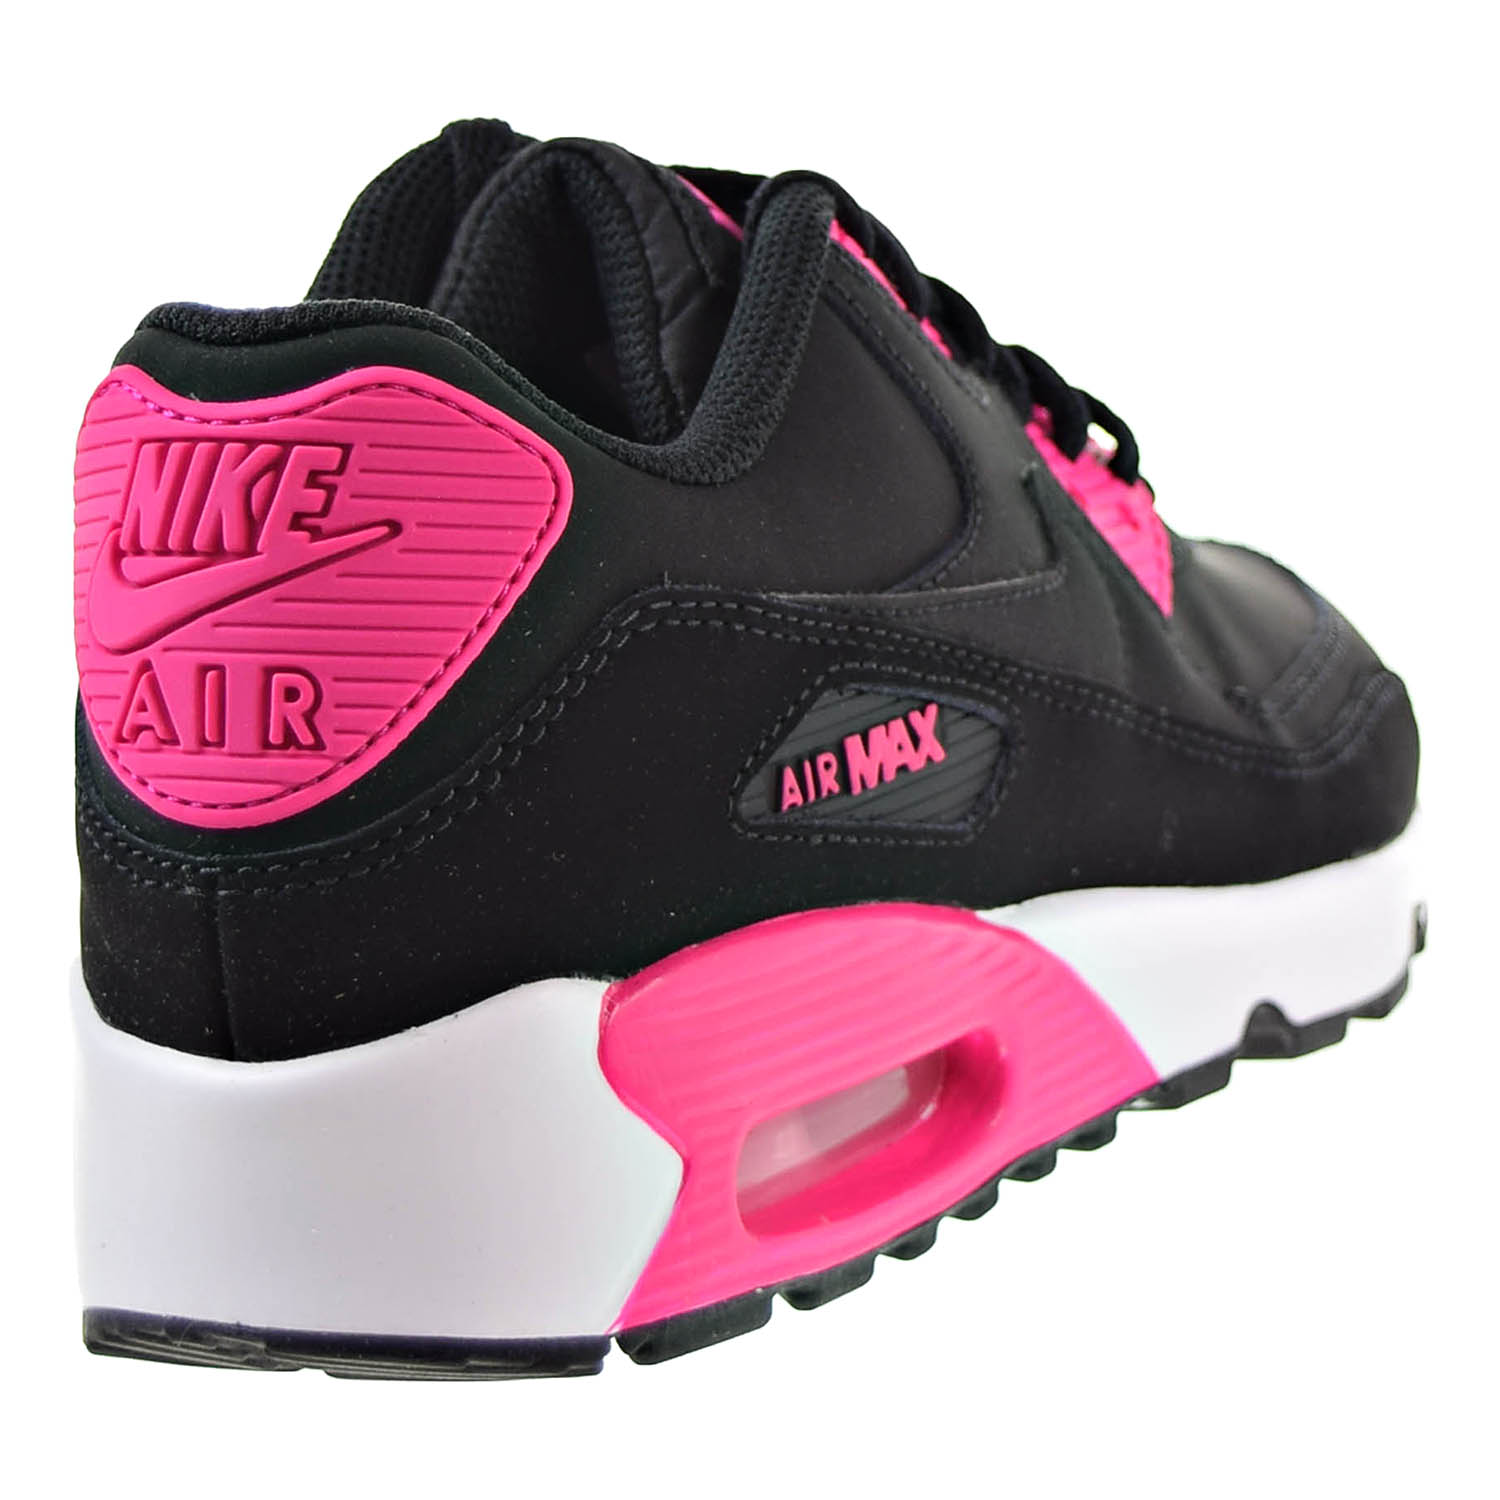 newest df993 06cce ... usa nike nike air max 90 ltrgs big kids shoes black pink prime white  833376 010